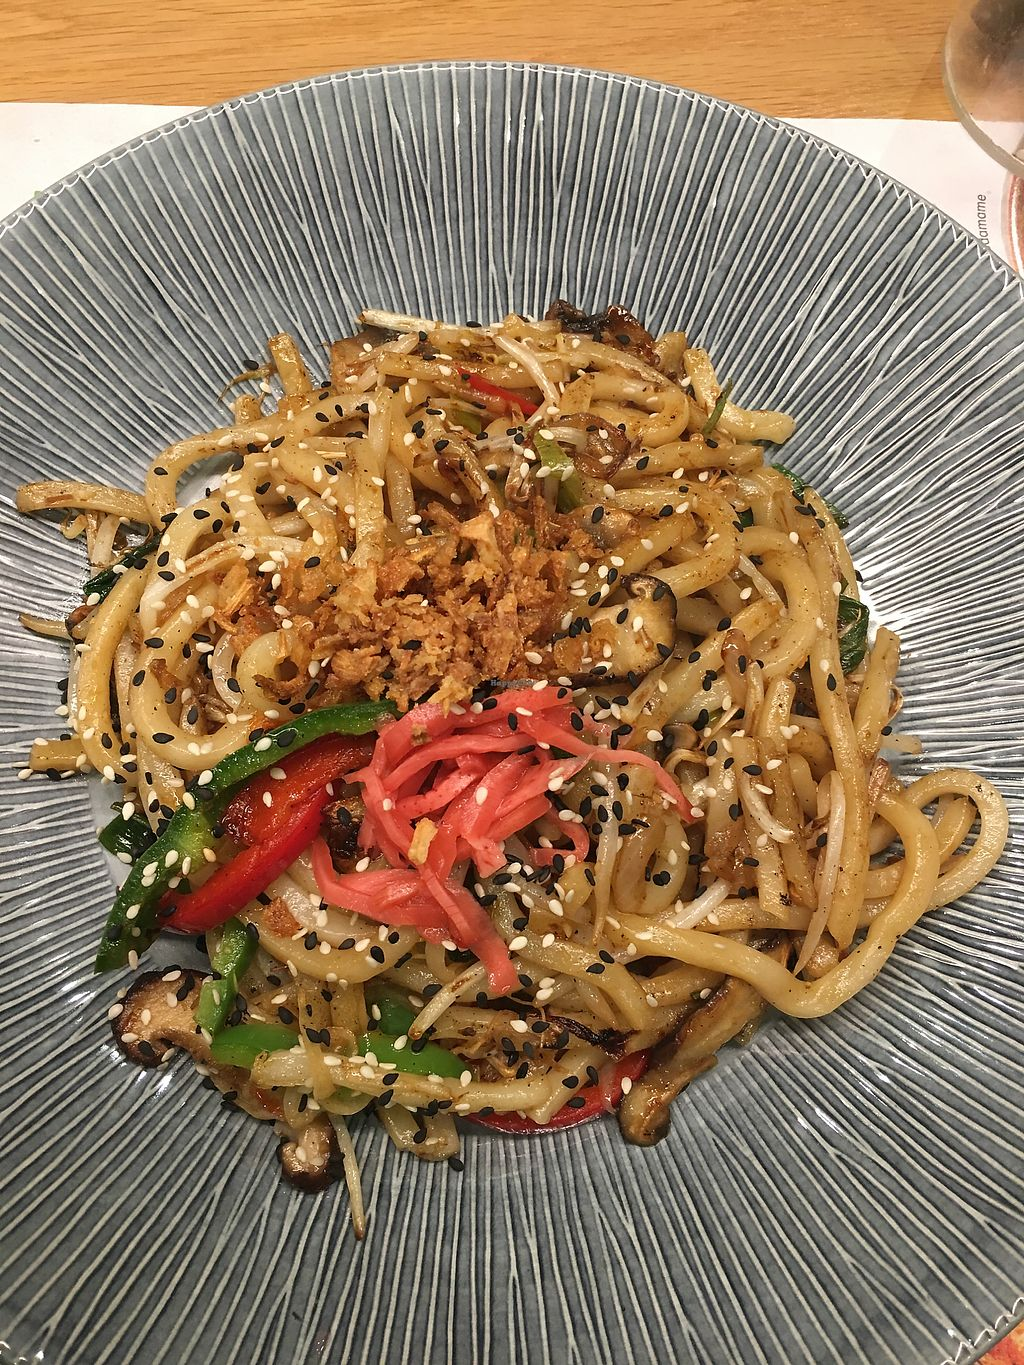 """Photo of Wagamama  by <a href=""""/members/profile/clap"""">clap</a> <br/>Yasai yaki soba <br/> March 22, 2018  - <a href='/contact/abuse/image/82121/374393'>Report</a>"""